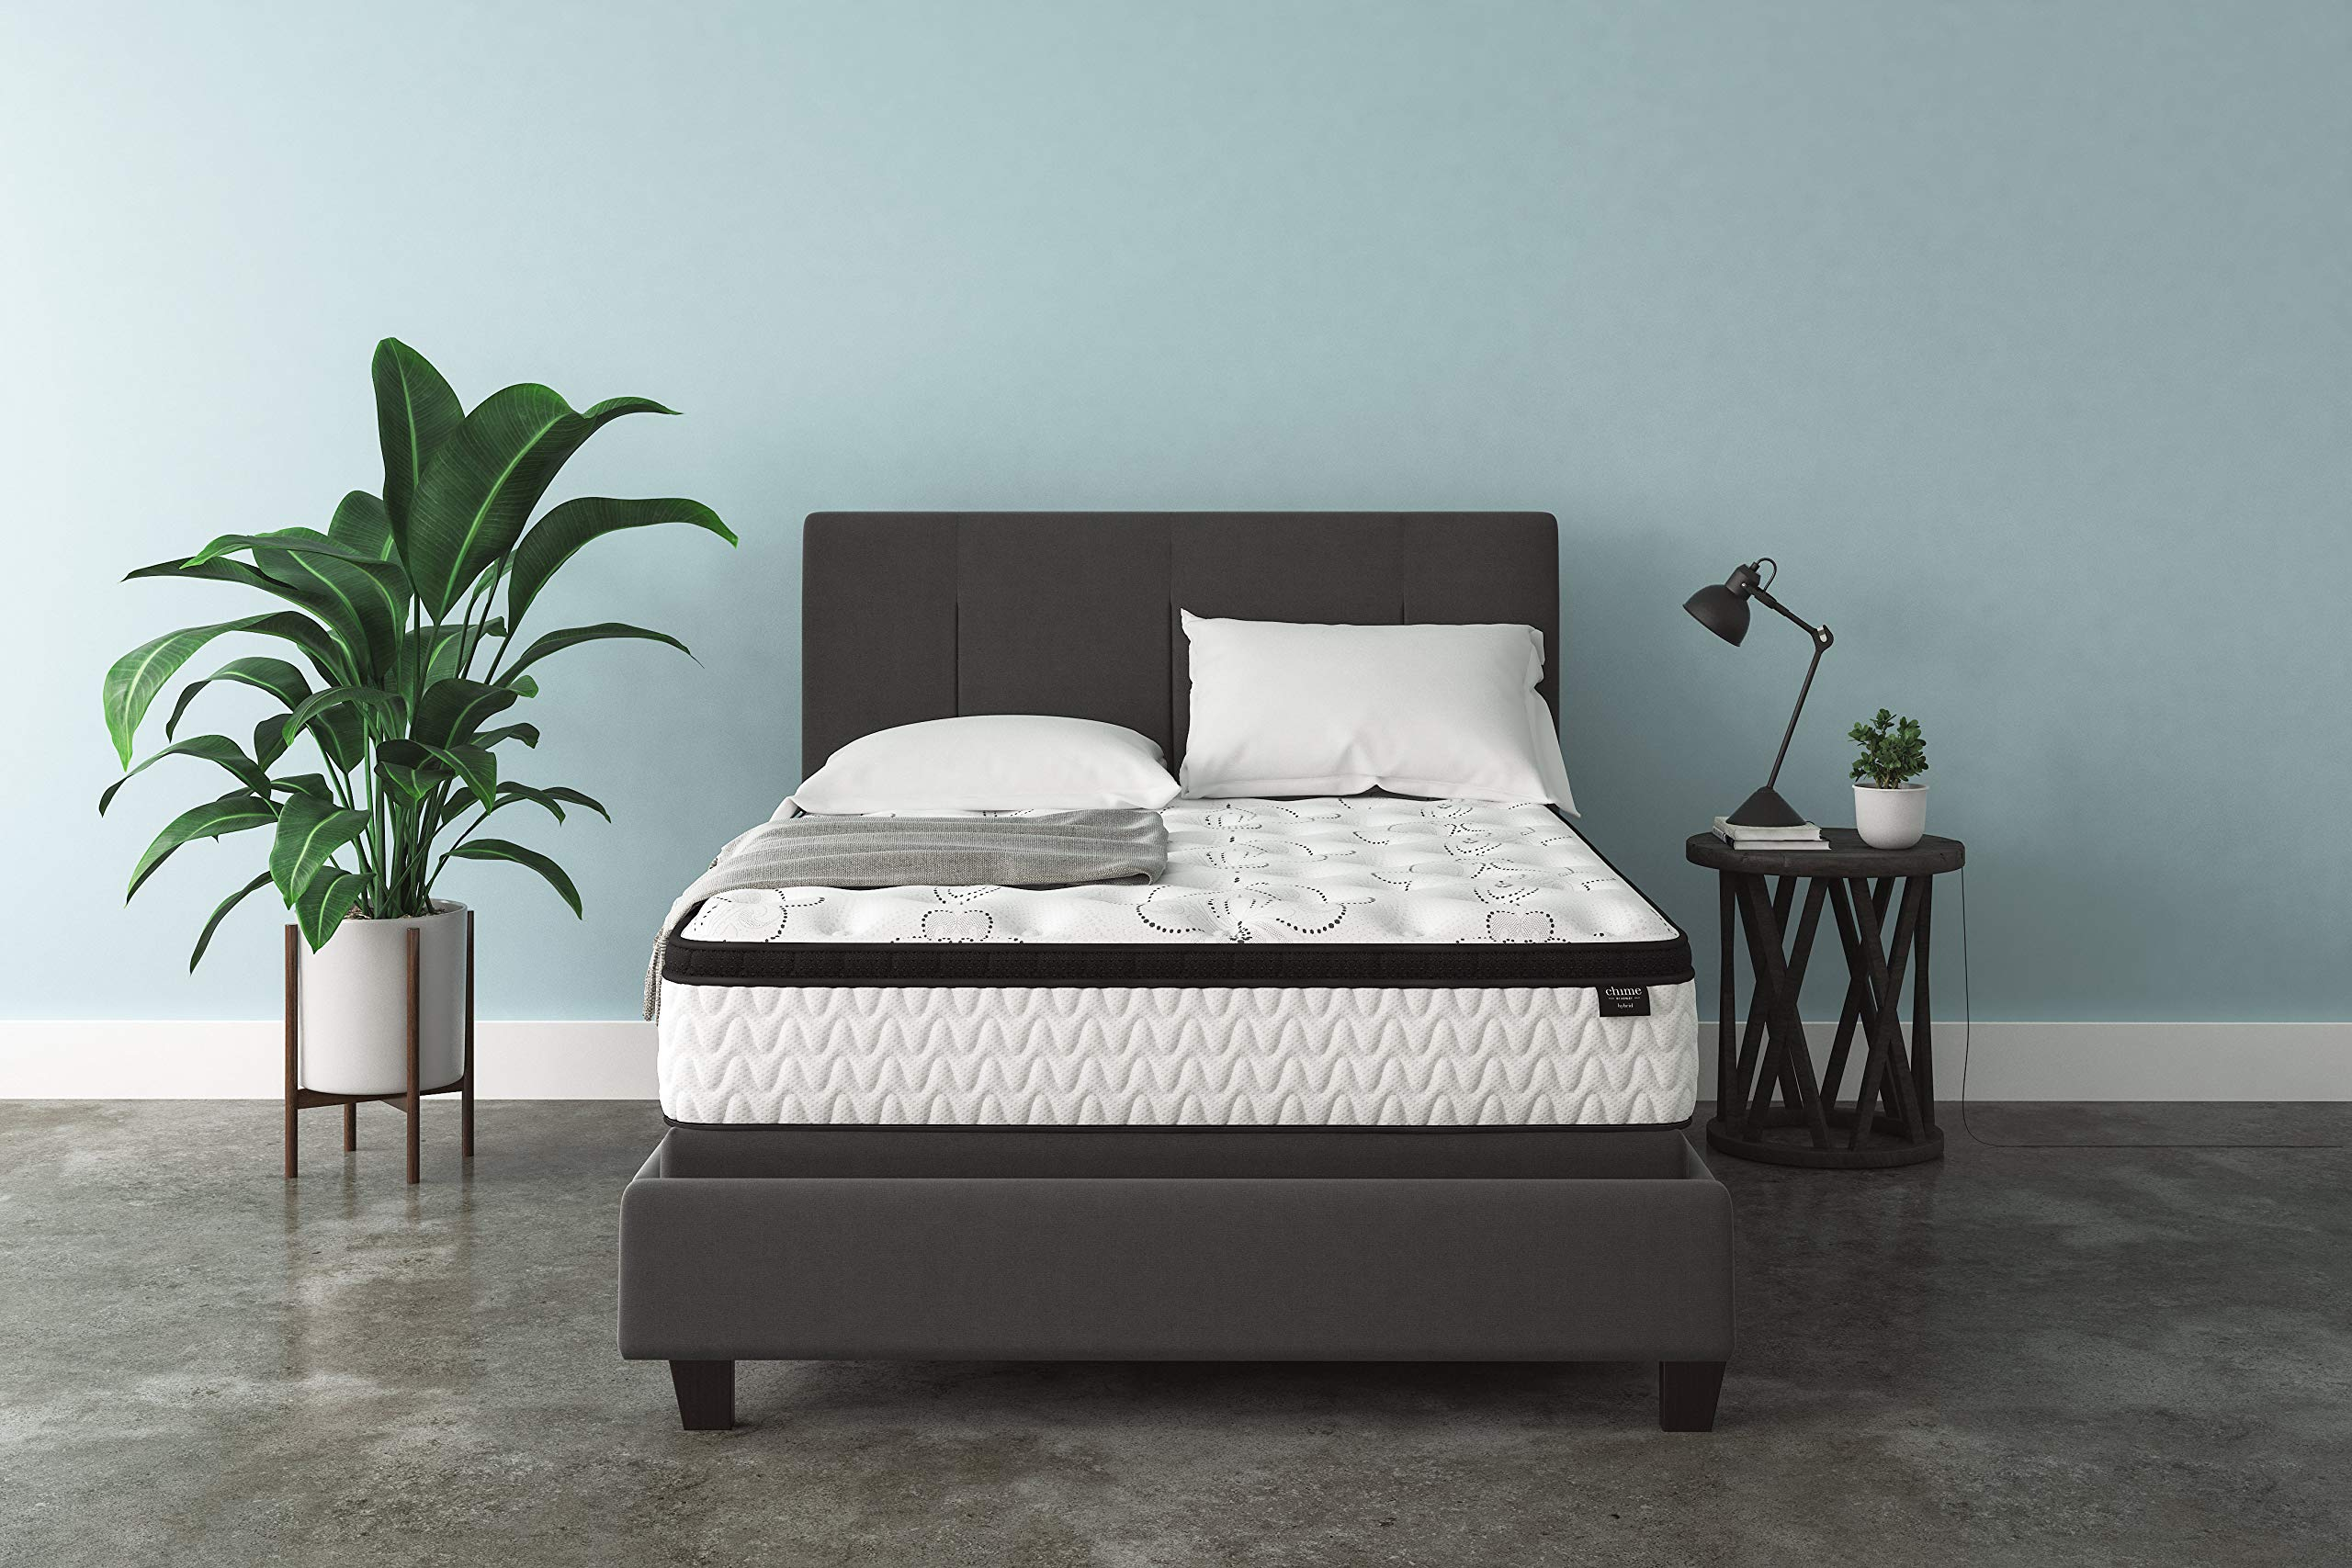 Ashley Furniture Signature Design - 12 Inch Chime Express Hybrid Innerspring - Firm Mattress - Bed in a Box - Queen - White by Signature Design by Ashley